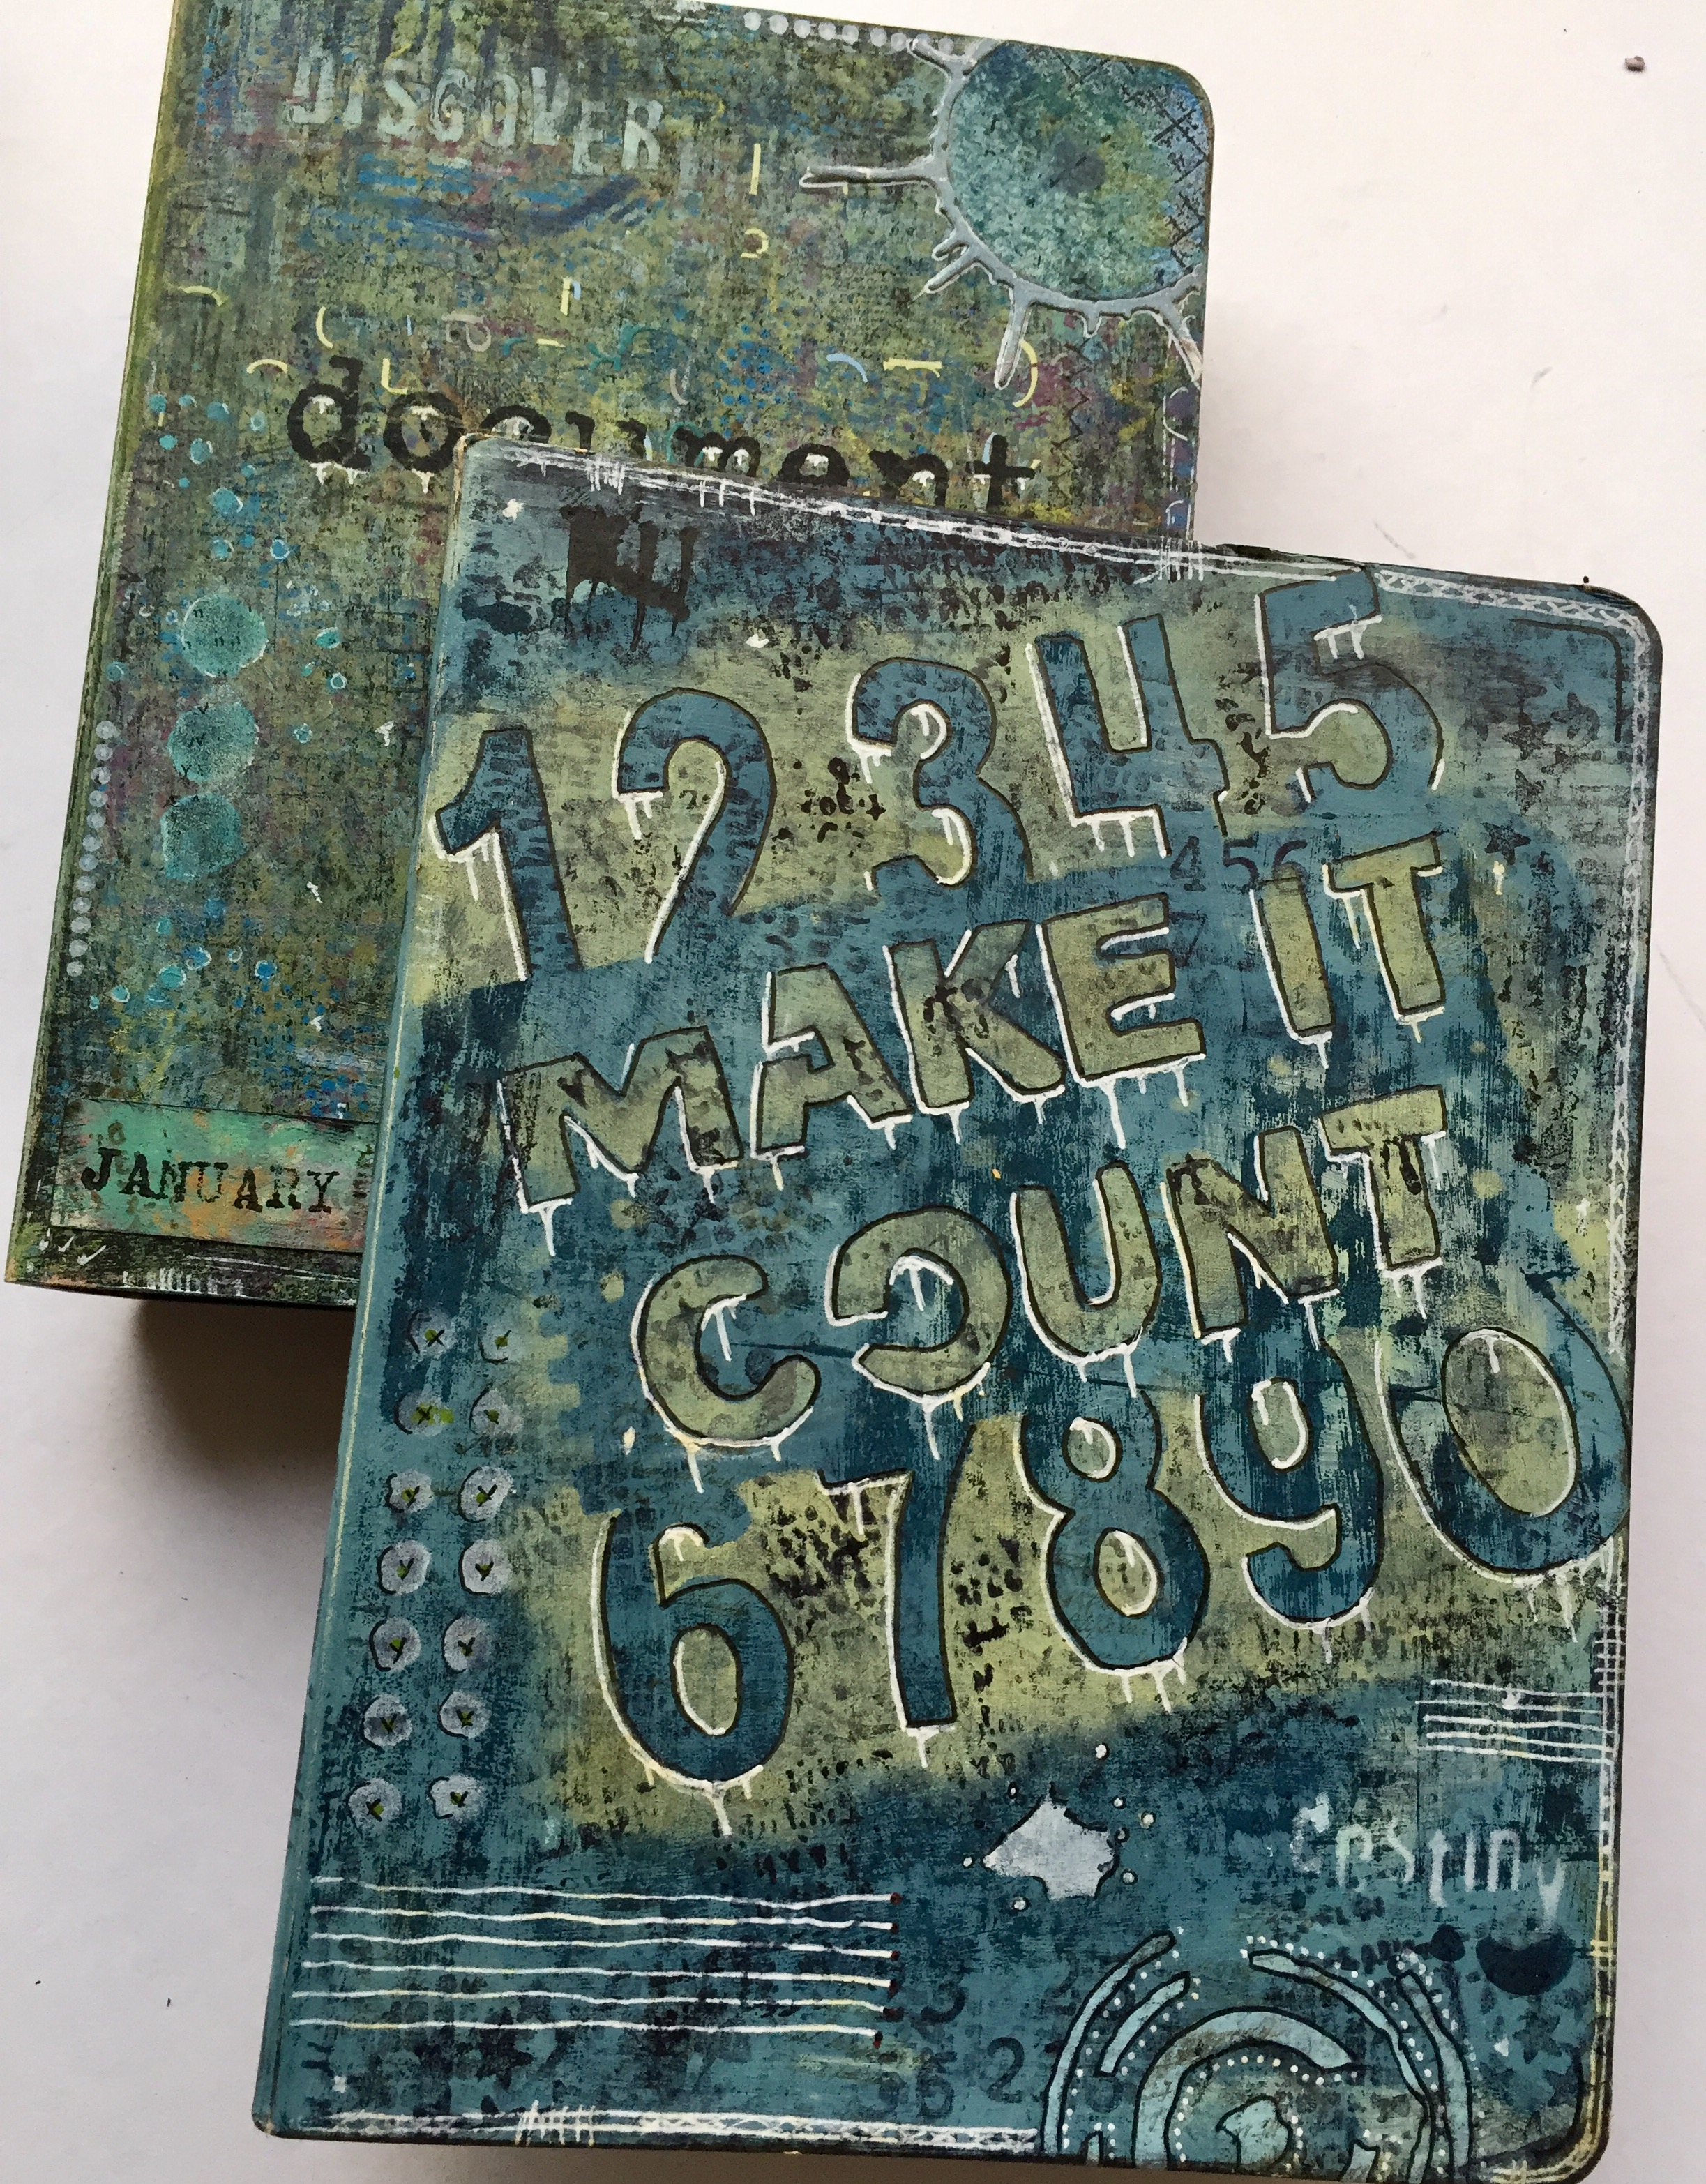 Documenting Life in Art: Mixed-Media Art Journal Planner Image 2